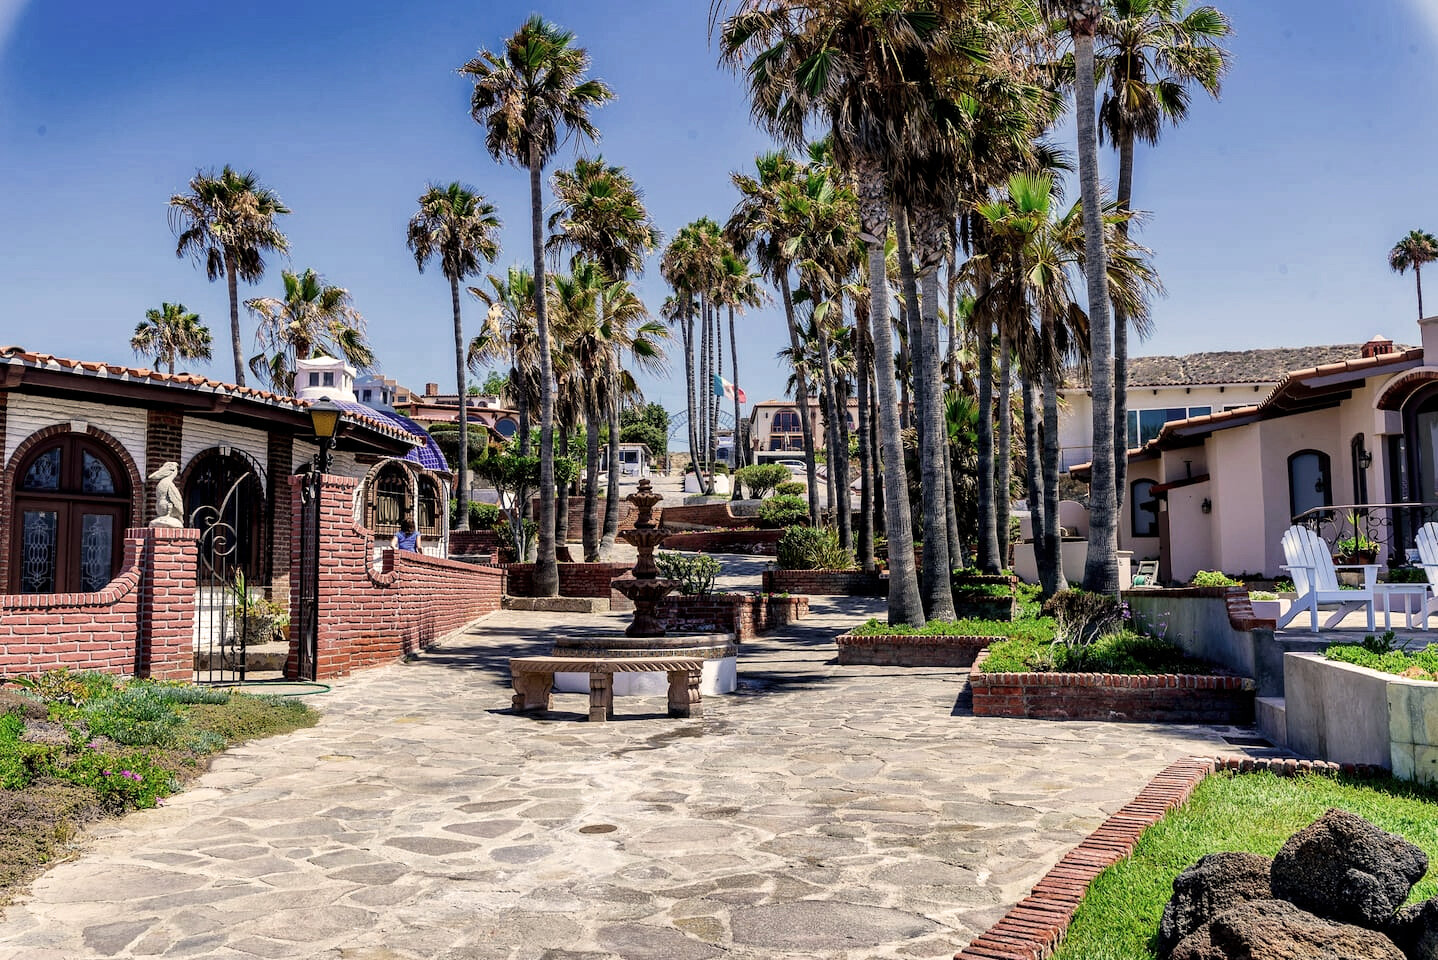 where to stay in rosarito